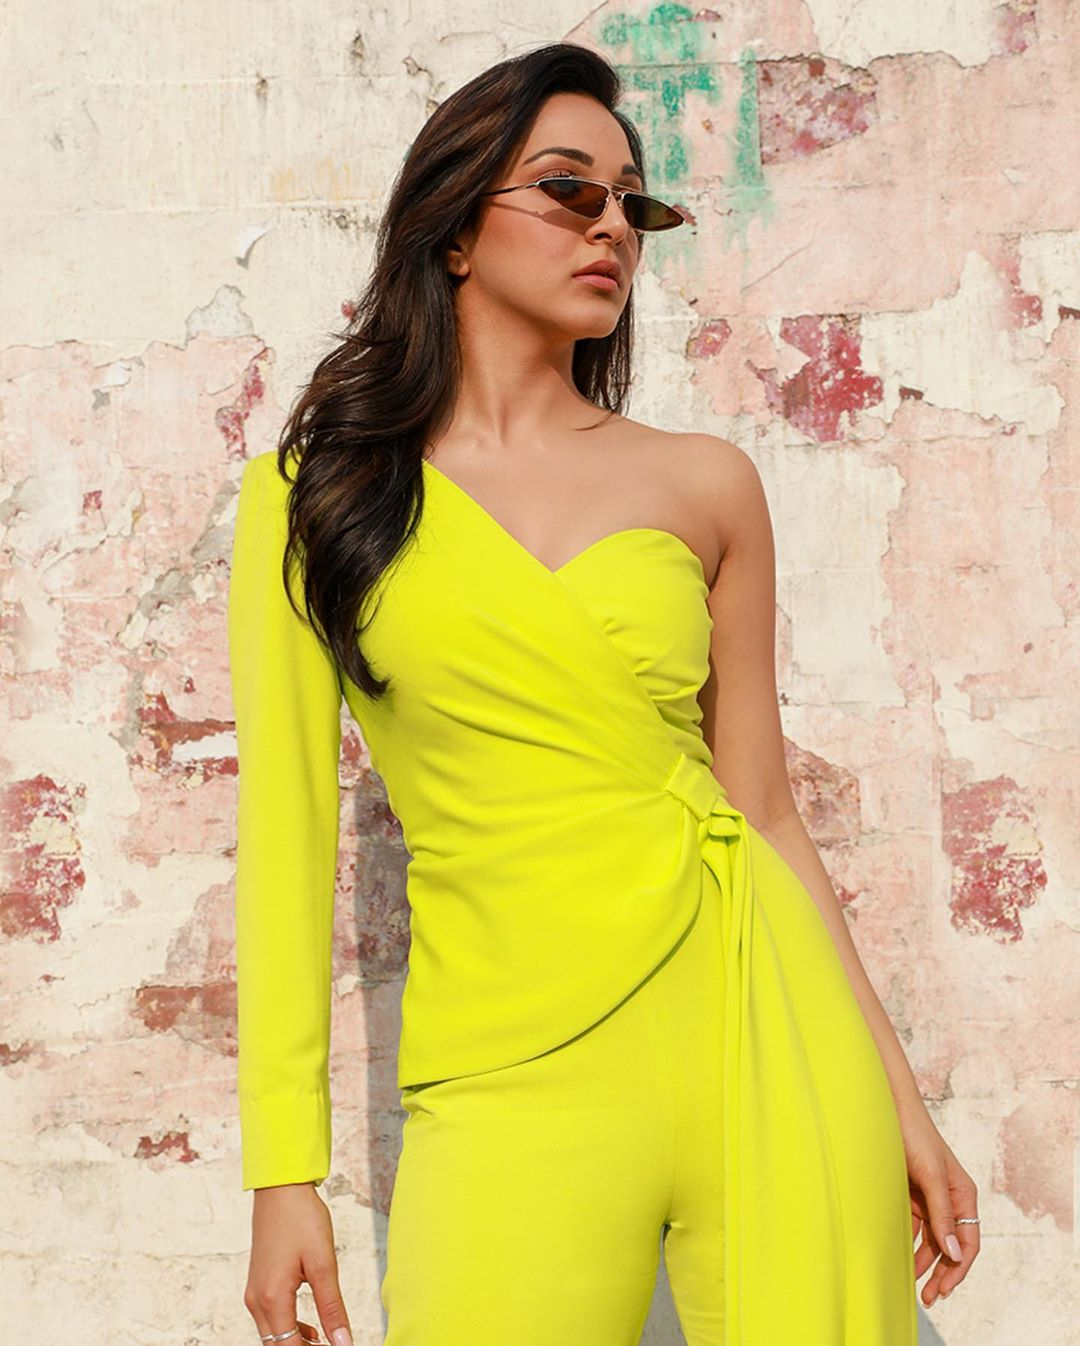 Kiara Advani in glamorous yellow